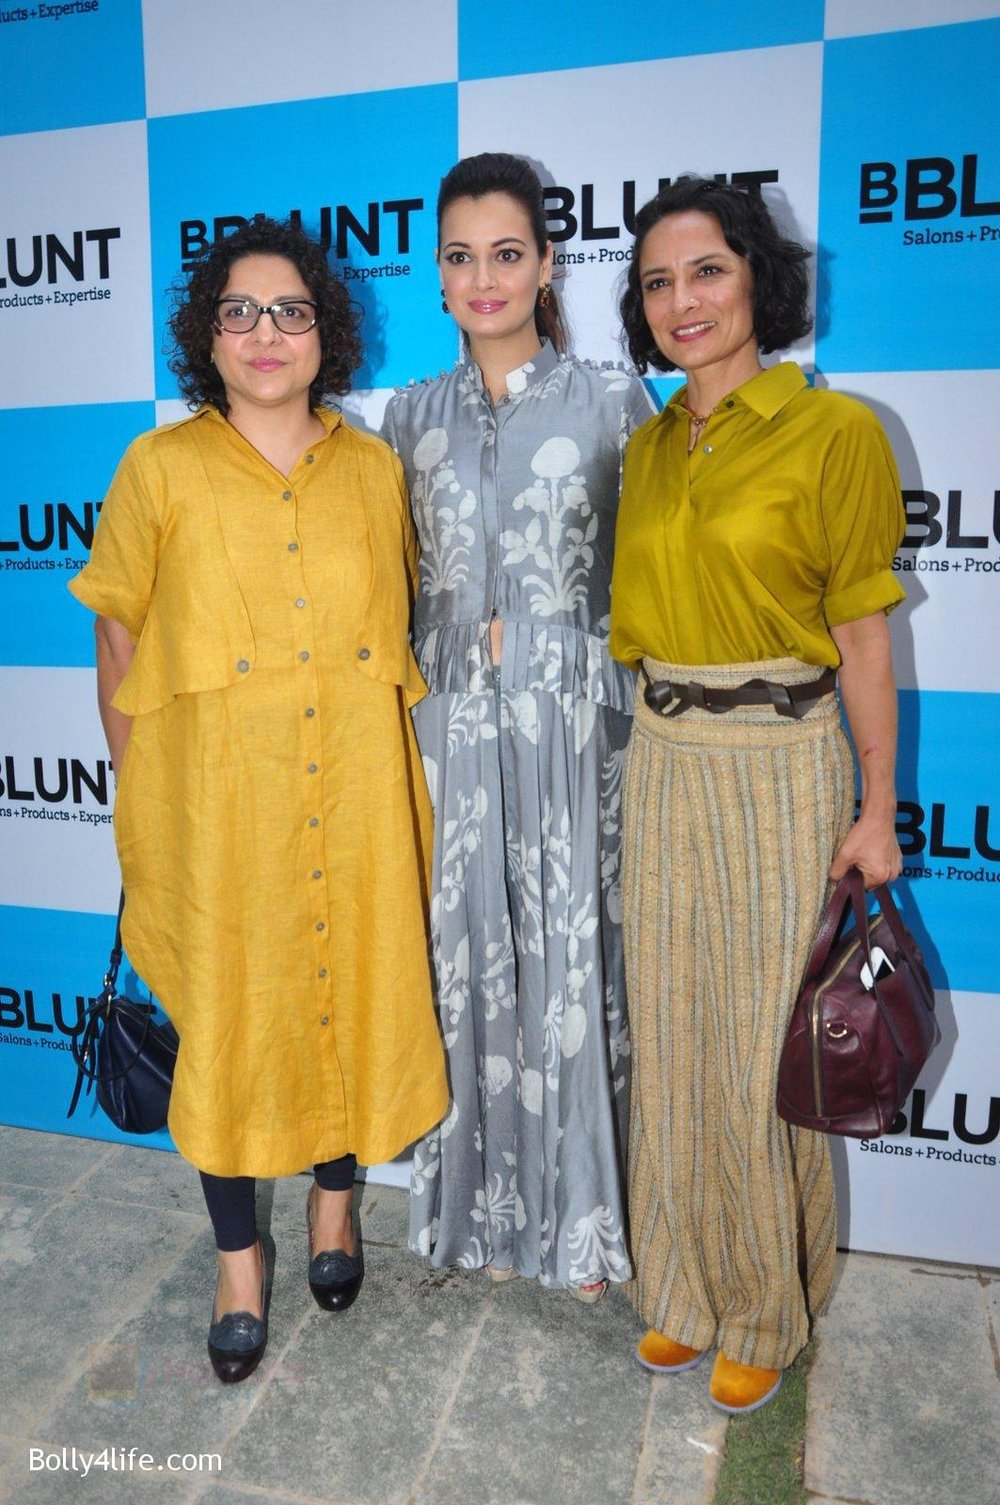 Dia-Mirza-Adhuna-Akhtar-launches-Bblunt-in-Malad-on-14th-Sept-2016-50.jpg